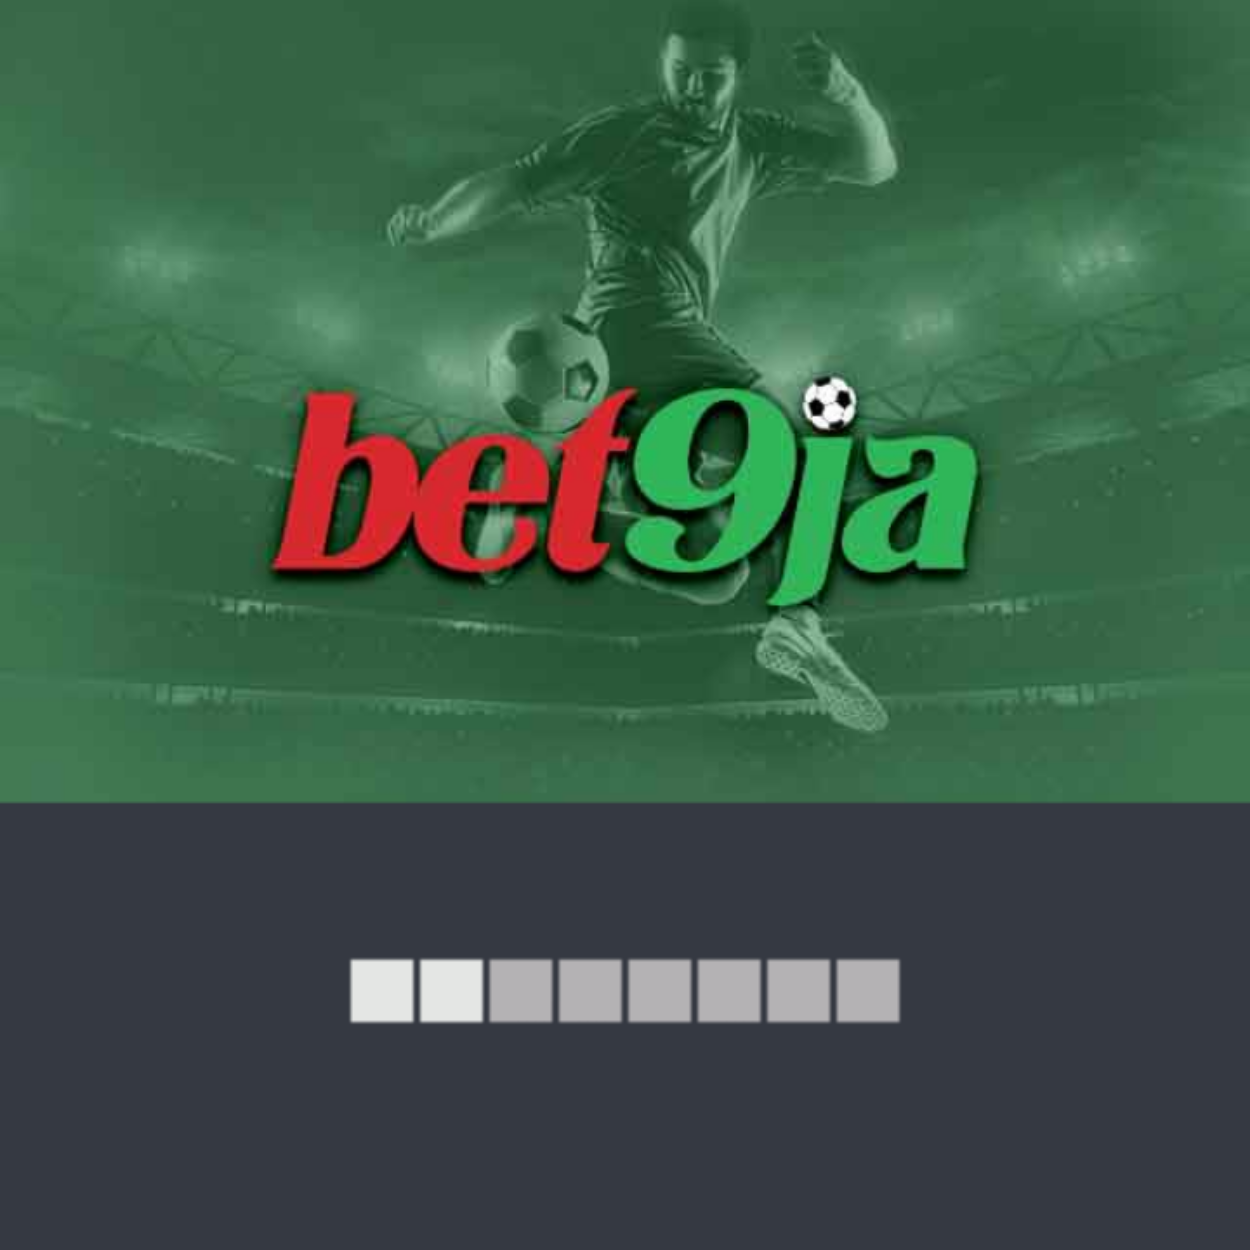 How to predict correctly and win on bet9ja virtual football